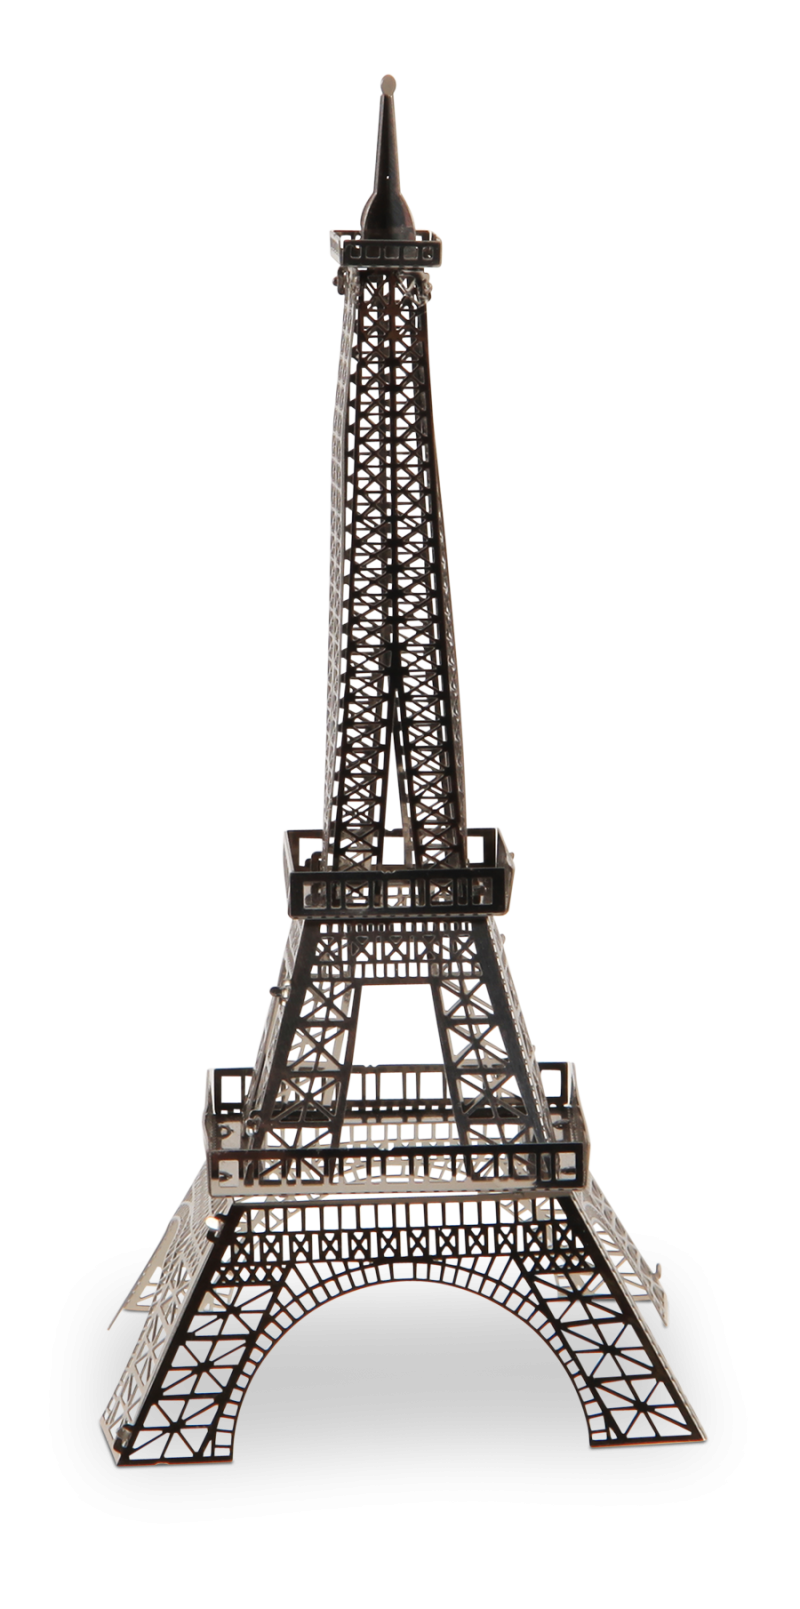 Eiffel Tower - Paris PNG Image